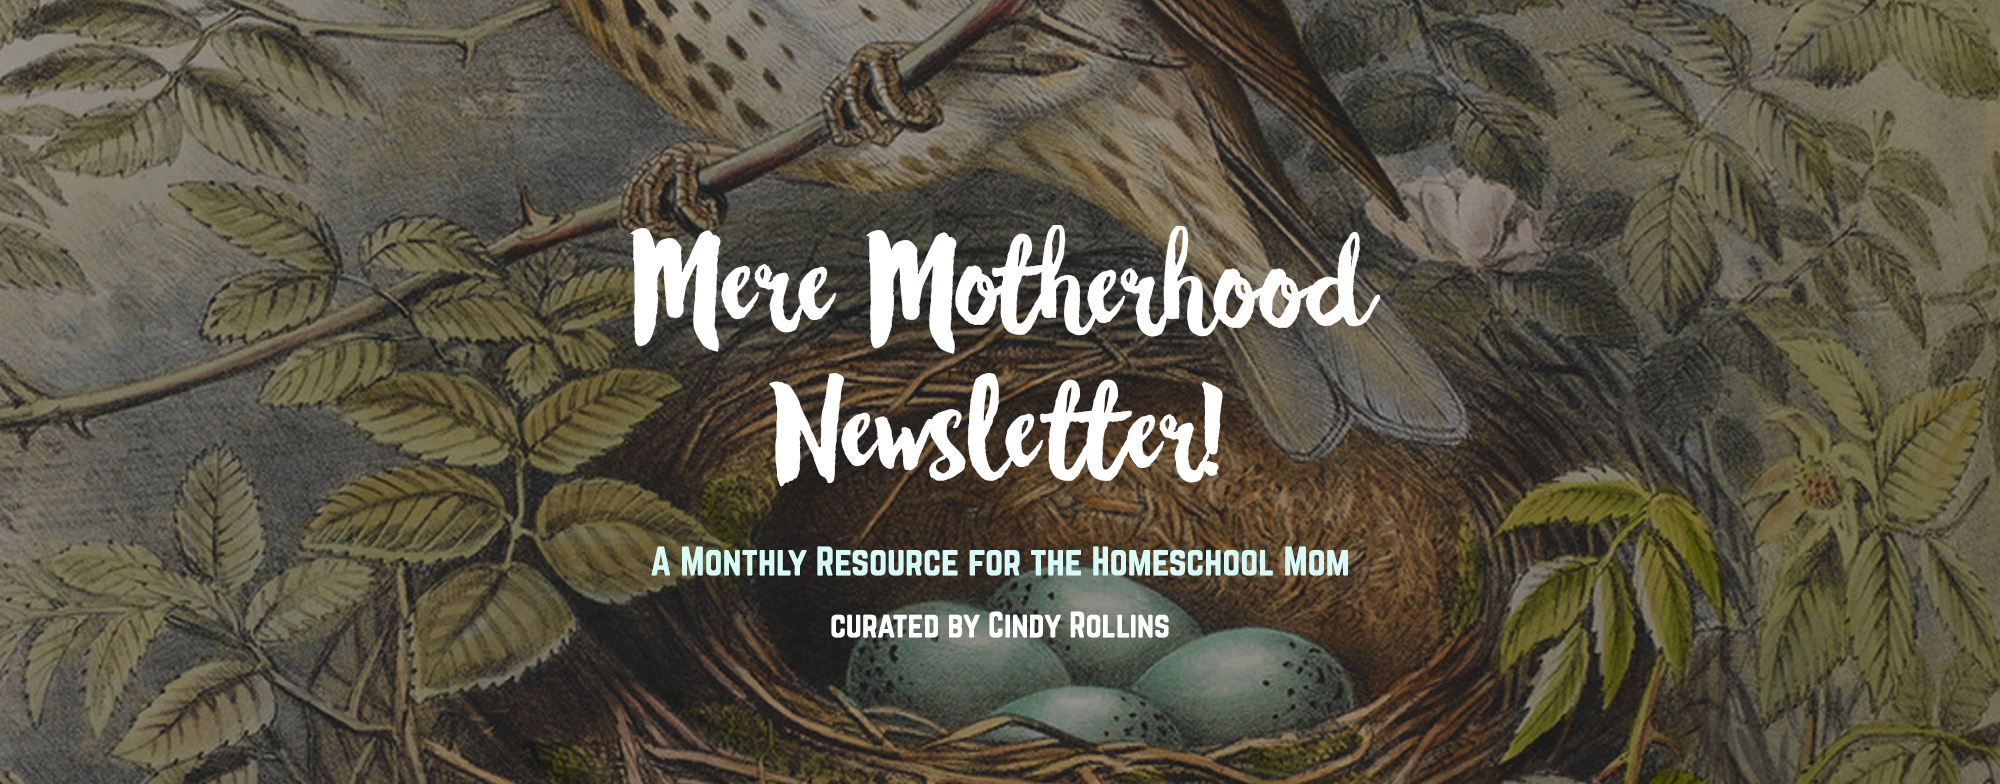 The Mere Motherhood Monthly Newsletter